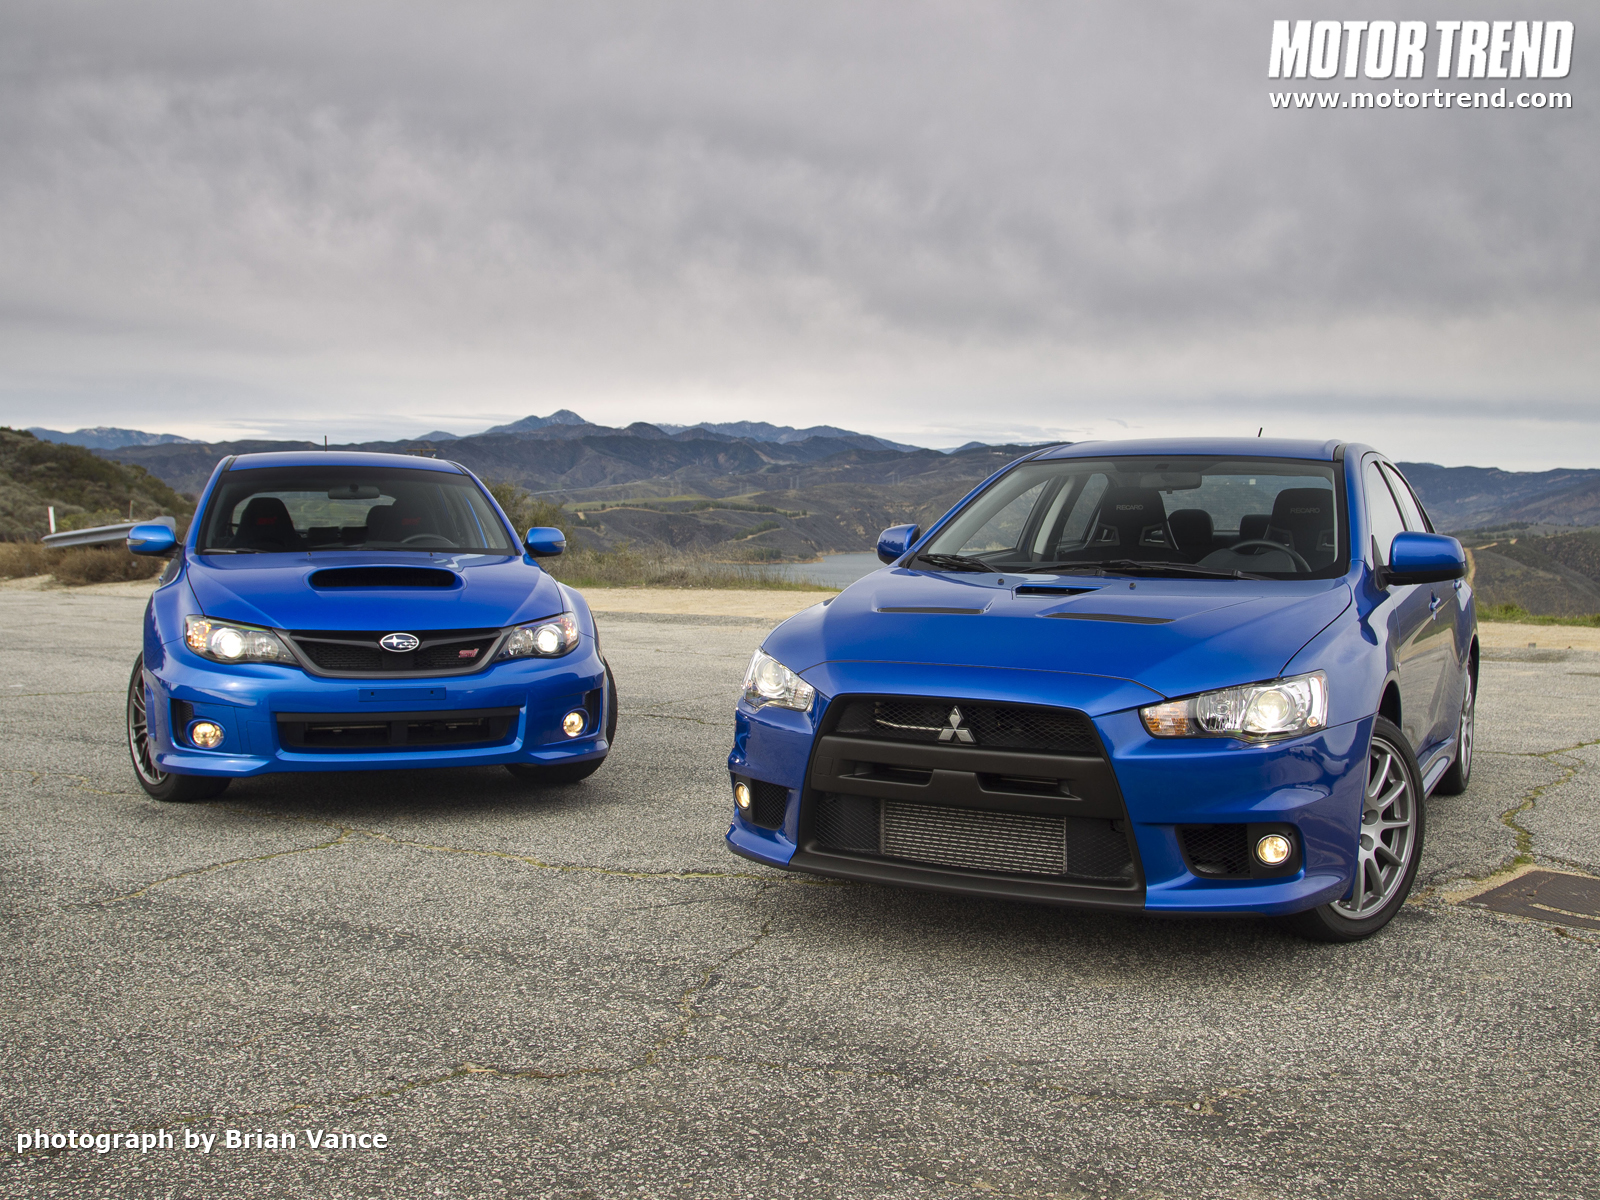 2011 Subaru WRX STI and 2010 Mitsubishi Lancer Evolution X Special 1600x1200